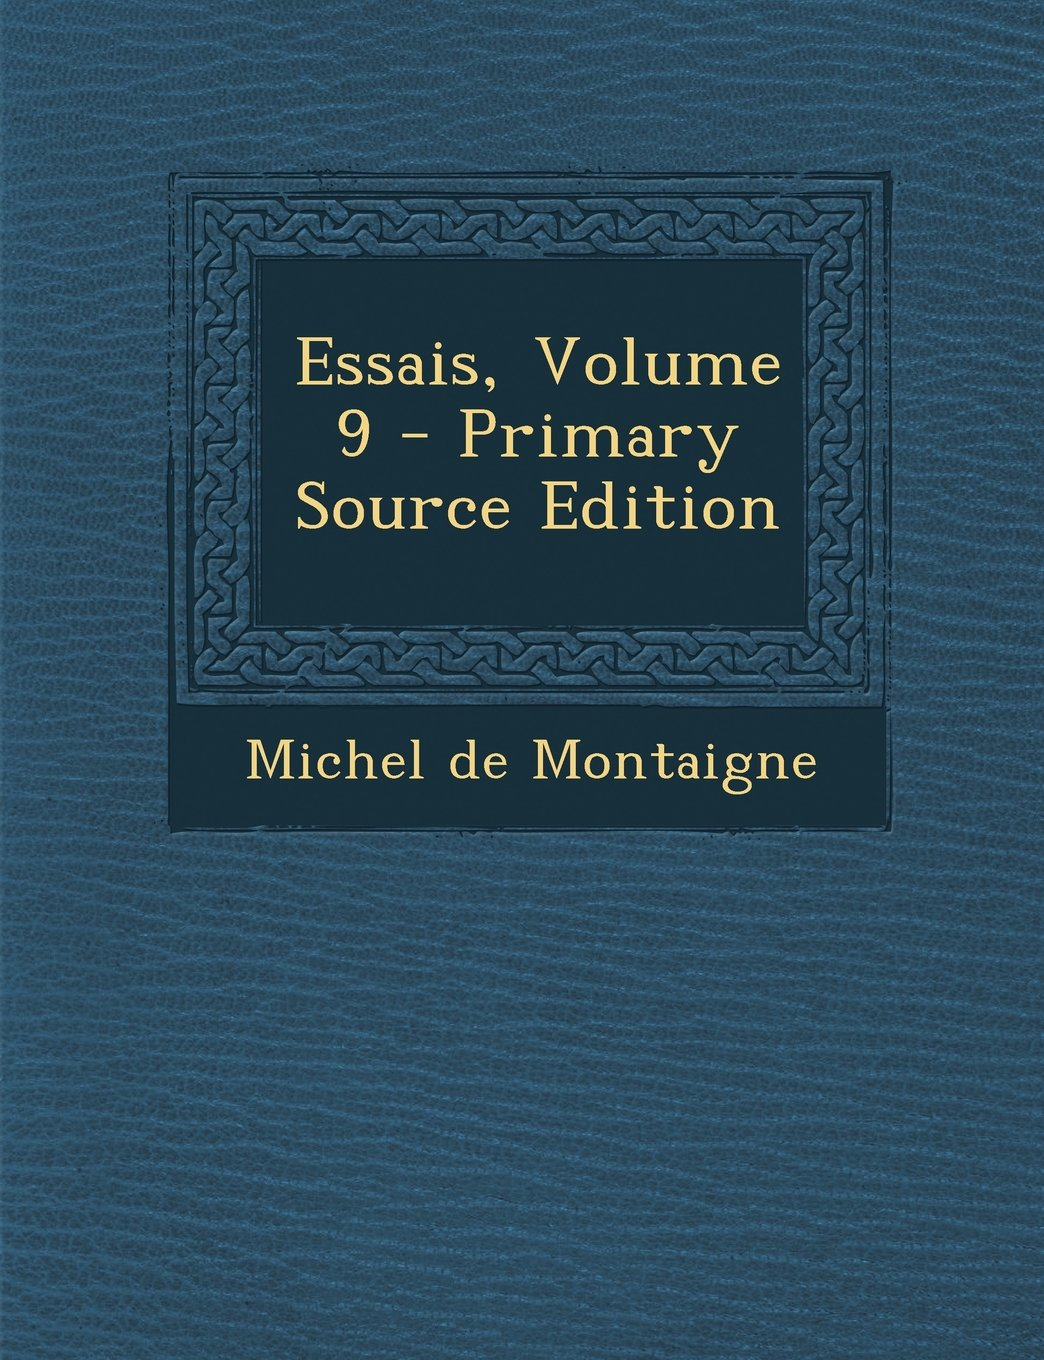 Essais, Volume 9 - Primary Source Edition (French Edition) ebook